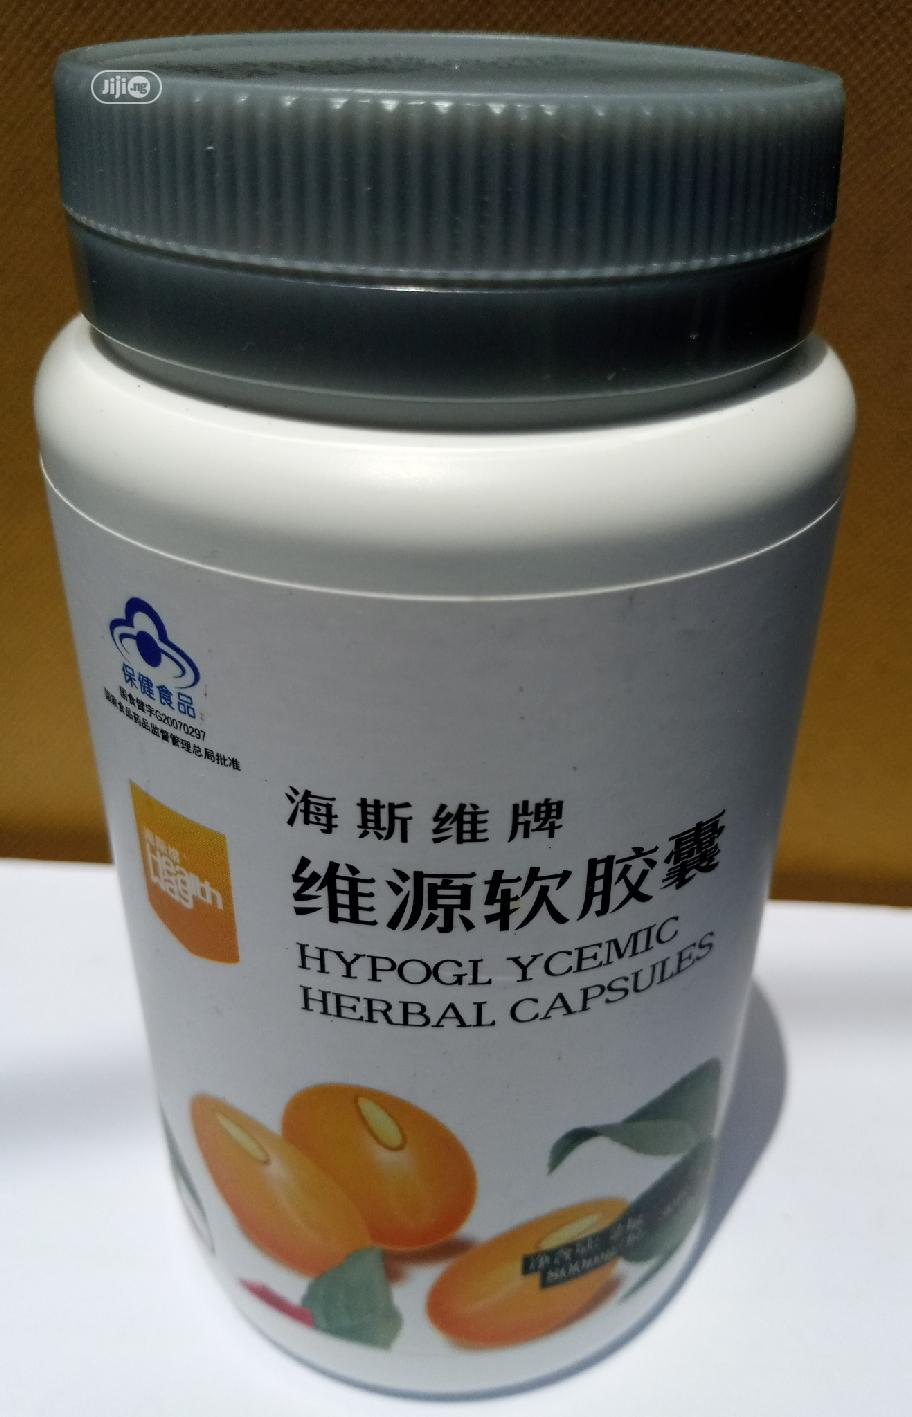 Get Your Healthy Liver Back With Norland Hypoglycemic Herbal Capsules